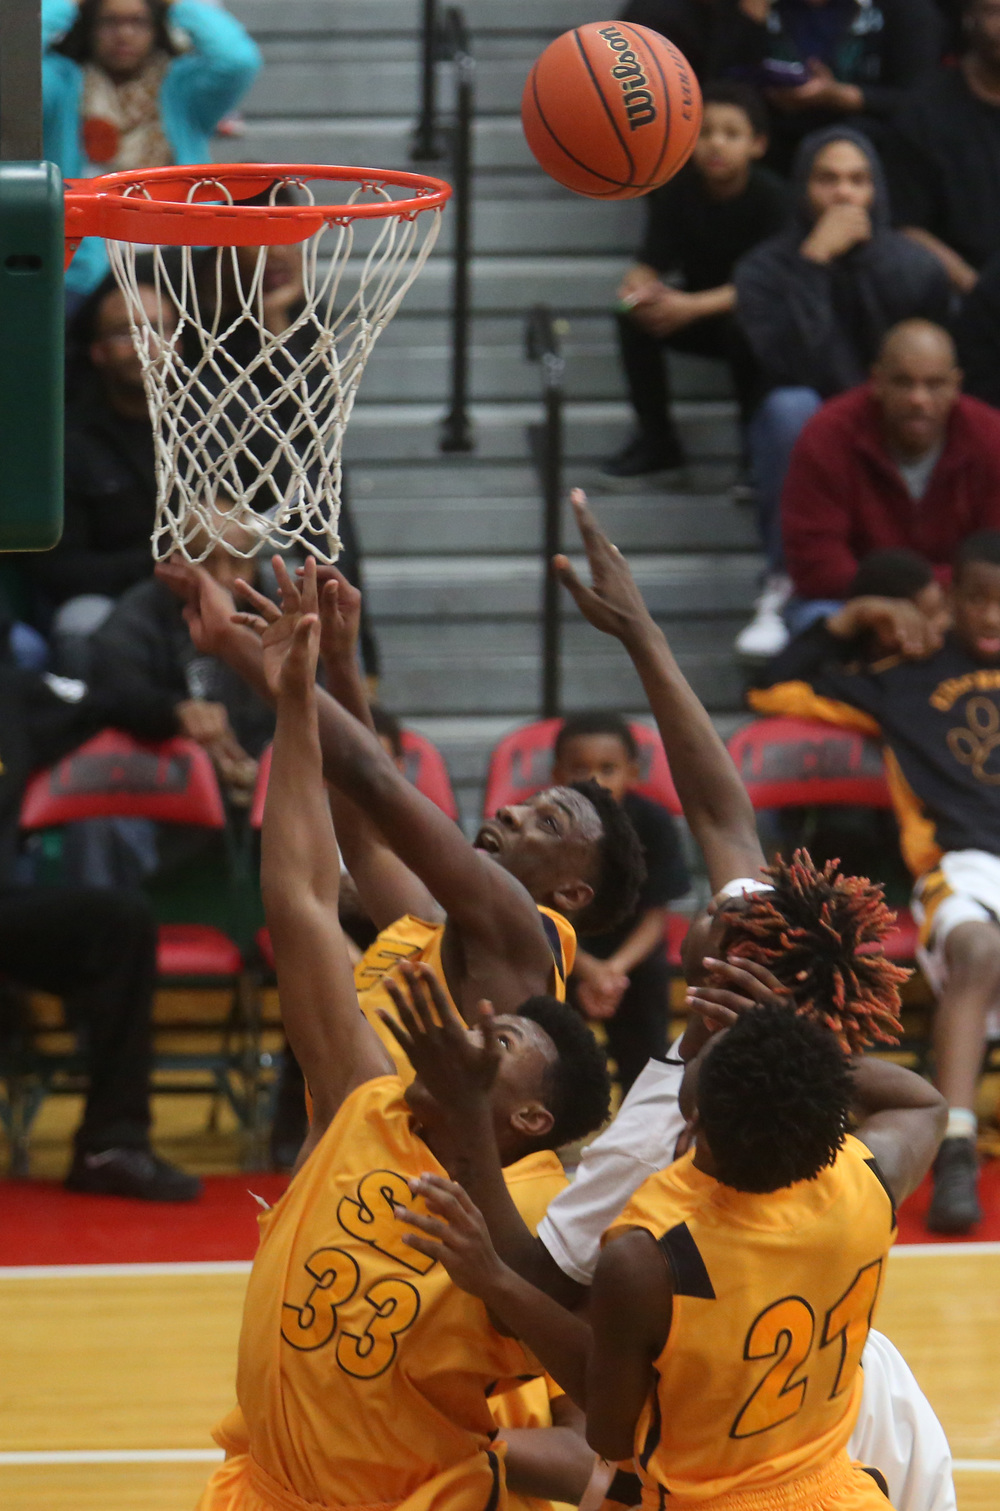 Southeast players go up for a rebound. David Spencer/The State Journal Register